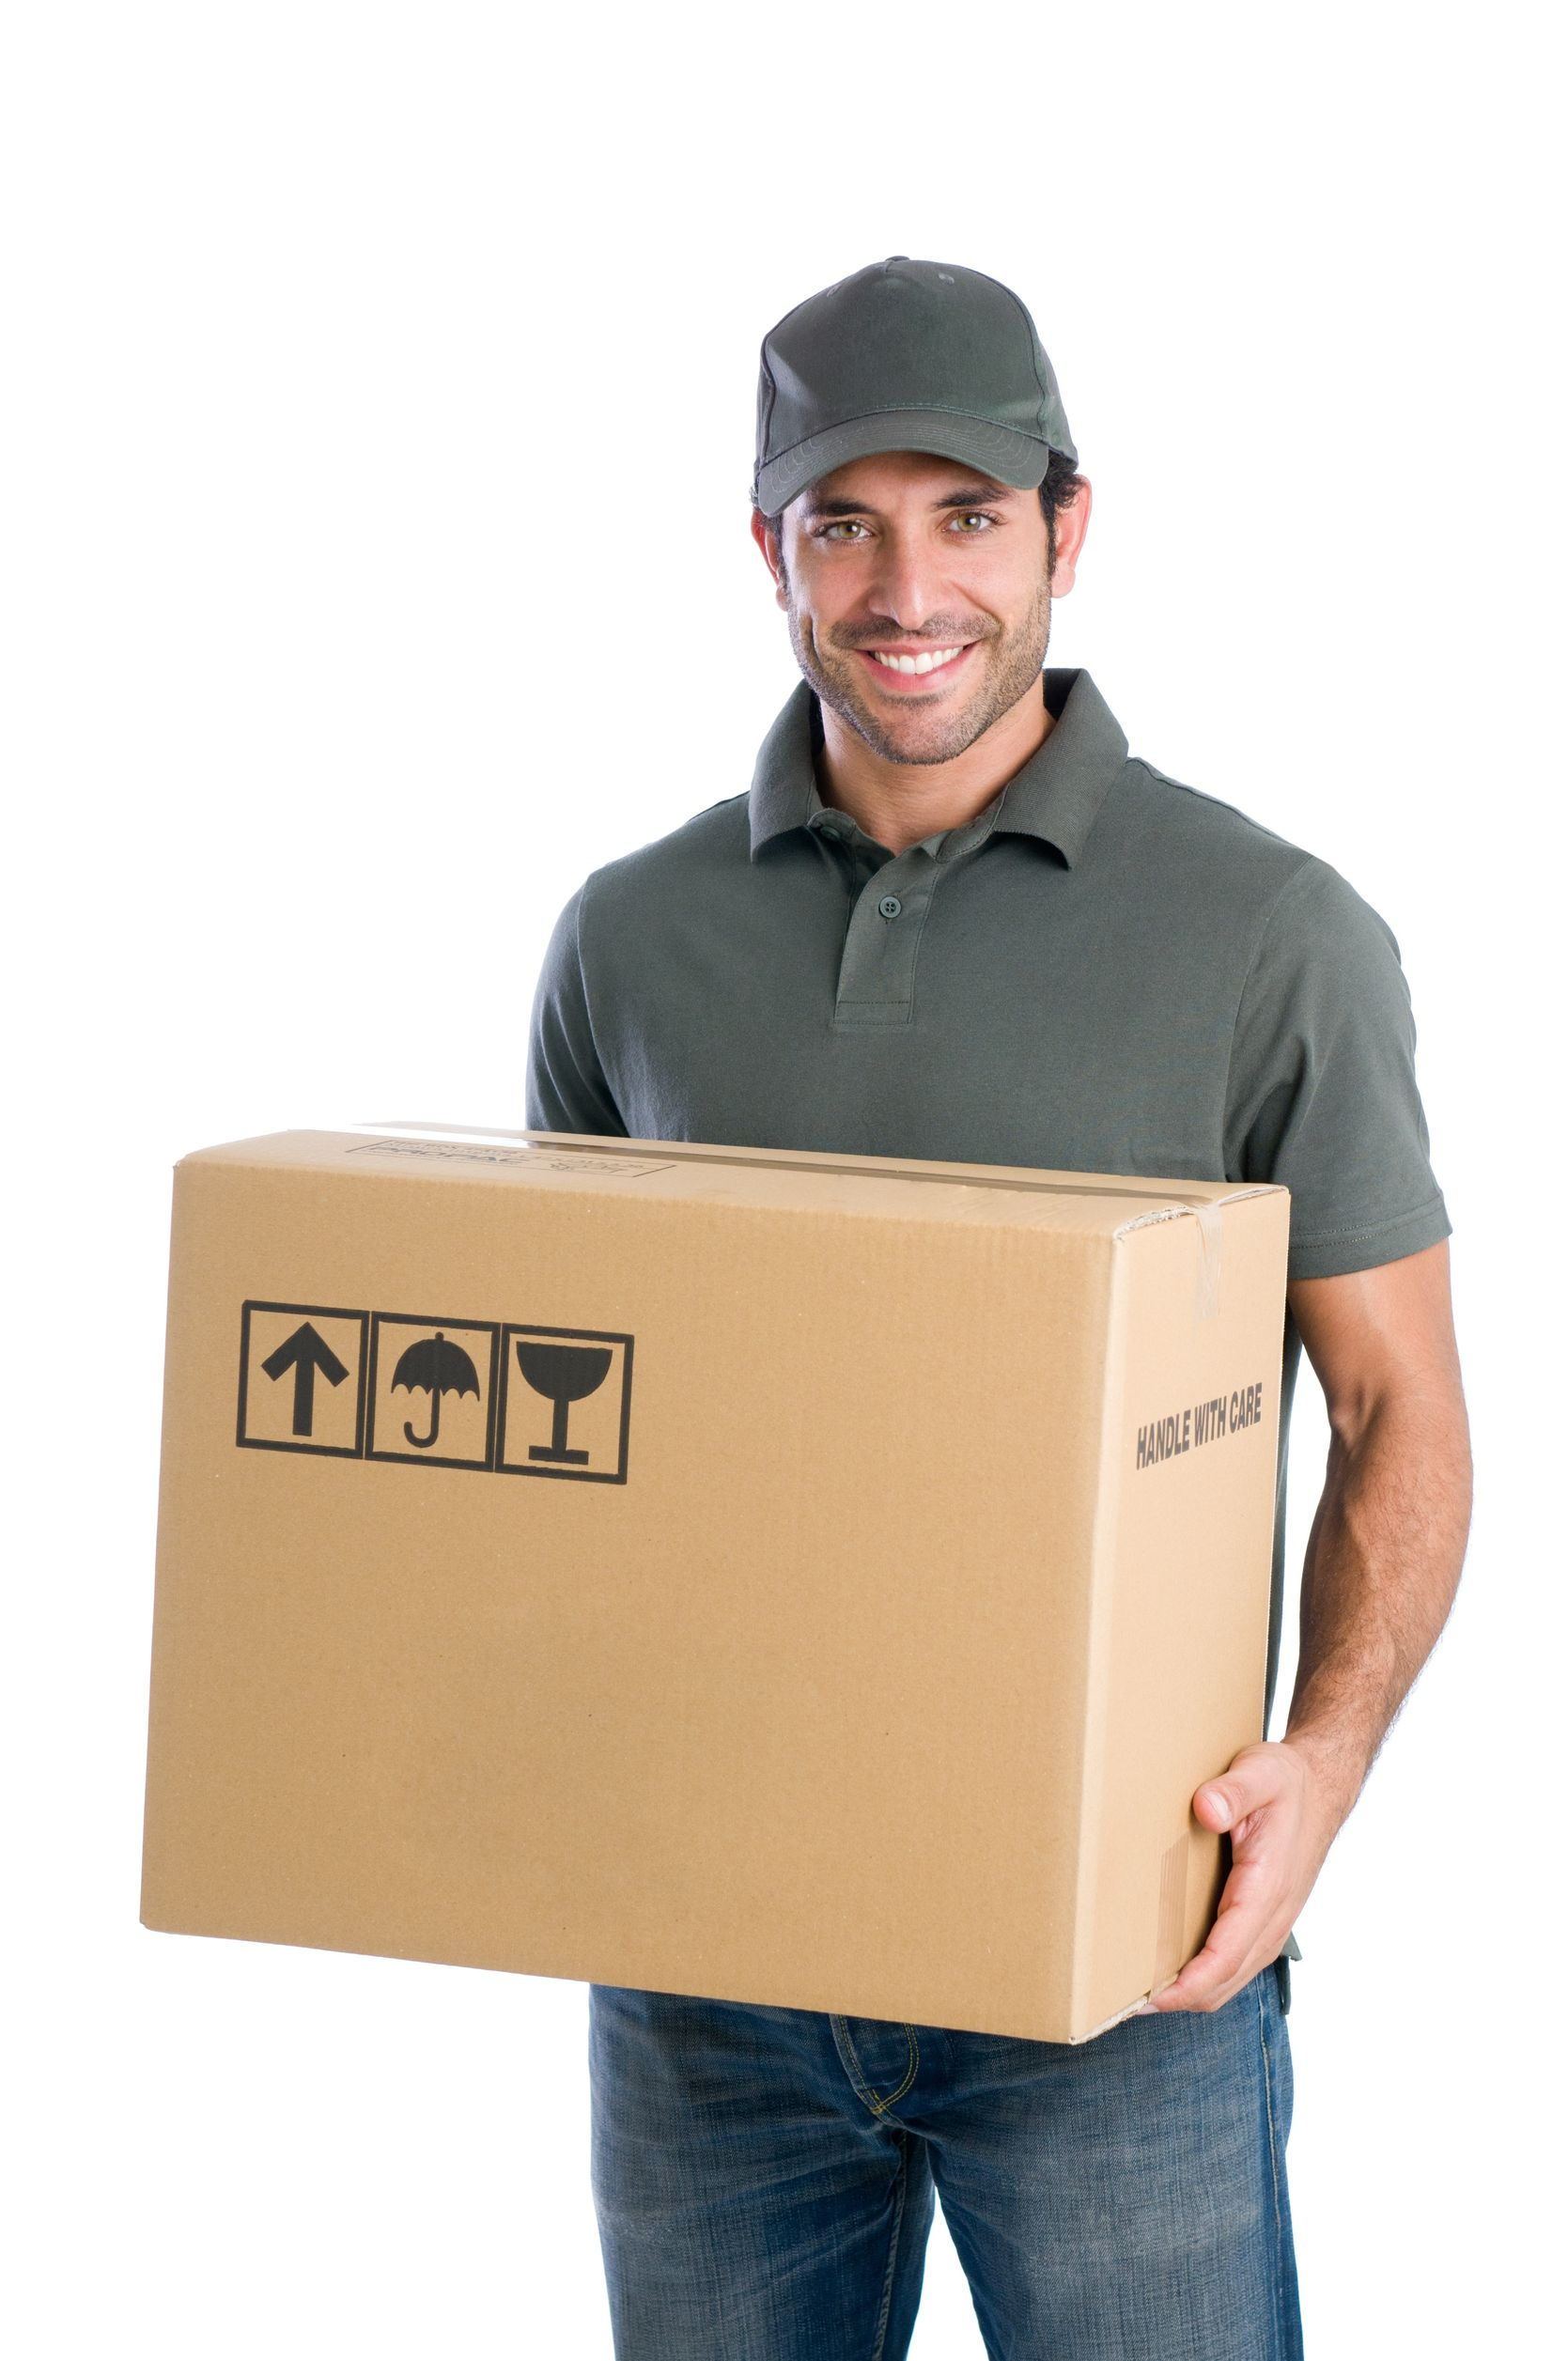 courier company E-go is an australian courier company, which specialises in fast and efficient  interstate parcel & courier delivery services get a quick quote now at e-gocom au.